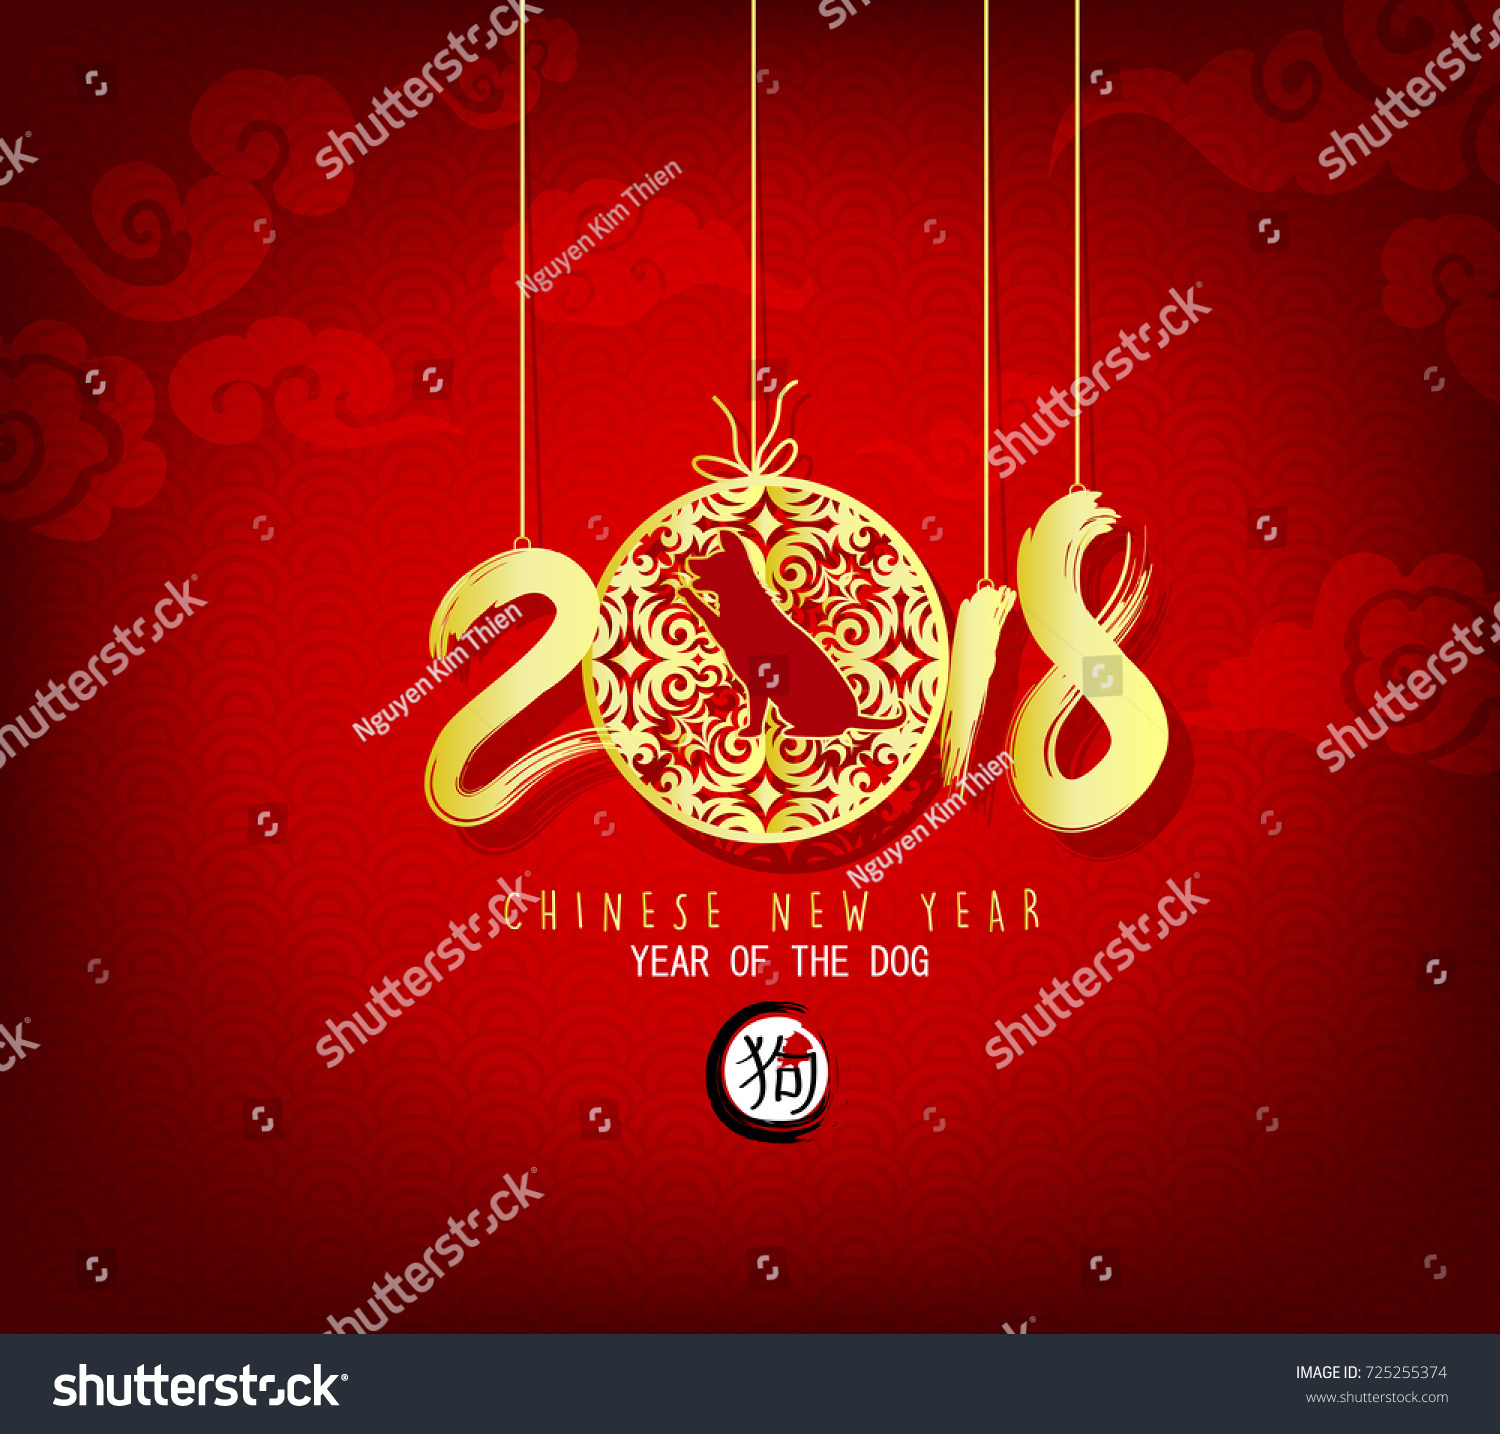 Happy new year 2018 greeting card stock vector 725255374 shutterstock happy new year 2018 greeting card chinese new year of ther dog kristyandbryce Images